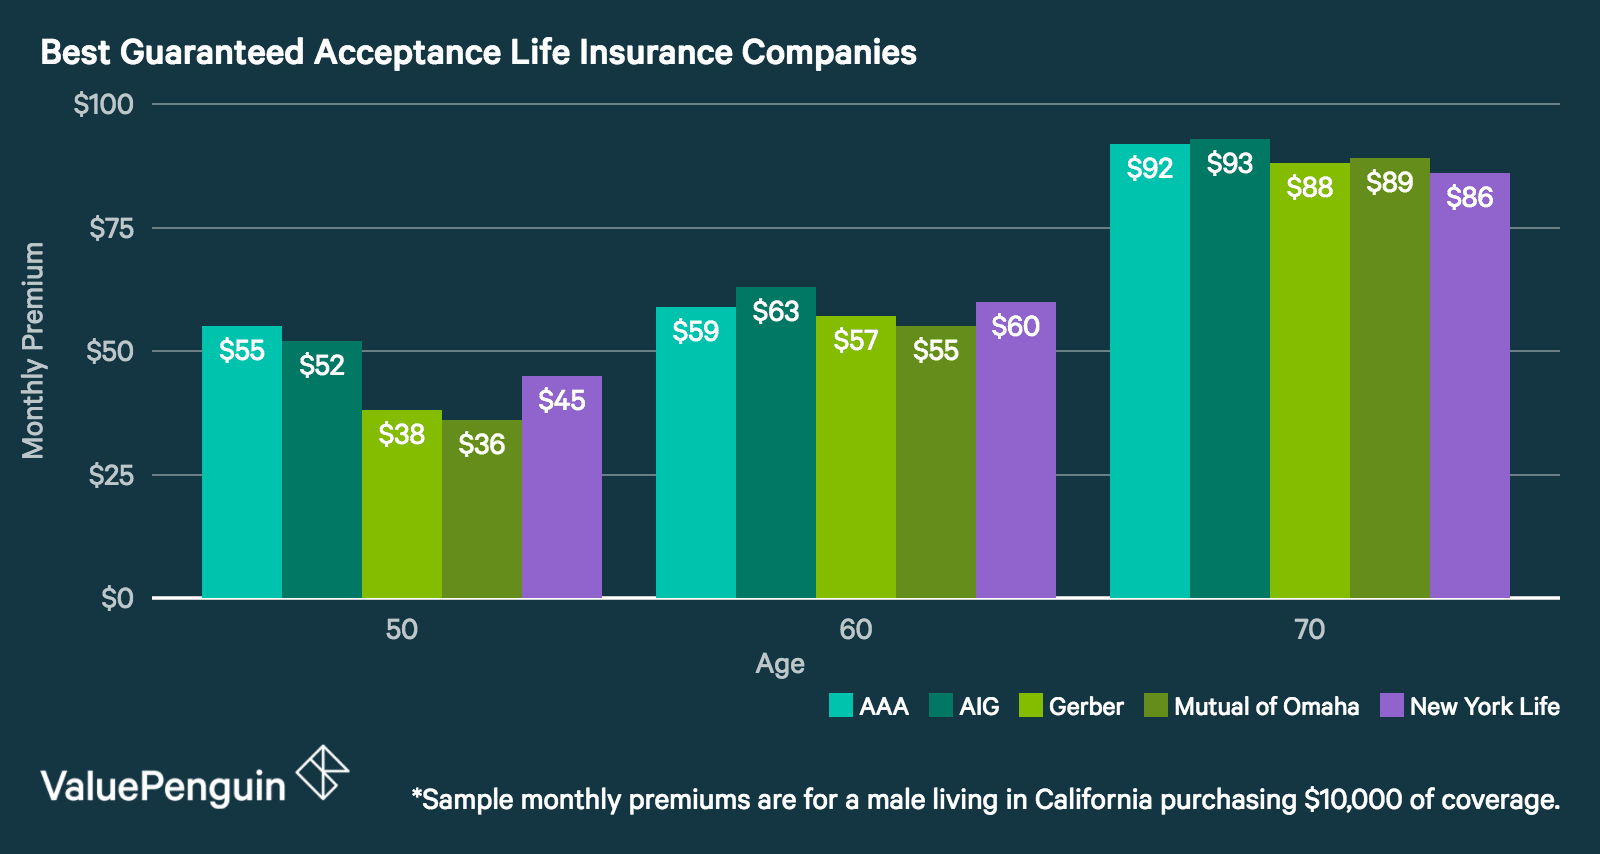 Senior Life Insurance Quotes Online Guaranteed Acceptance Life Insurance Best Companies & What To